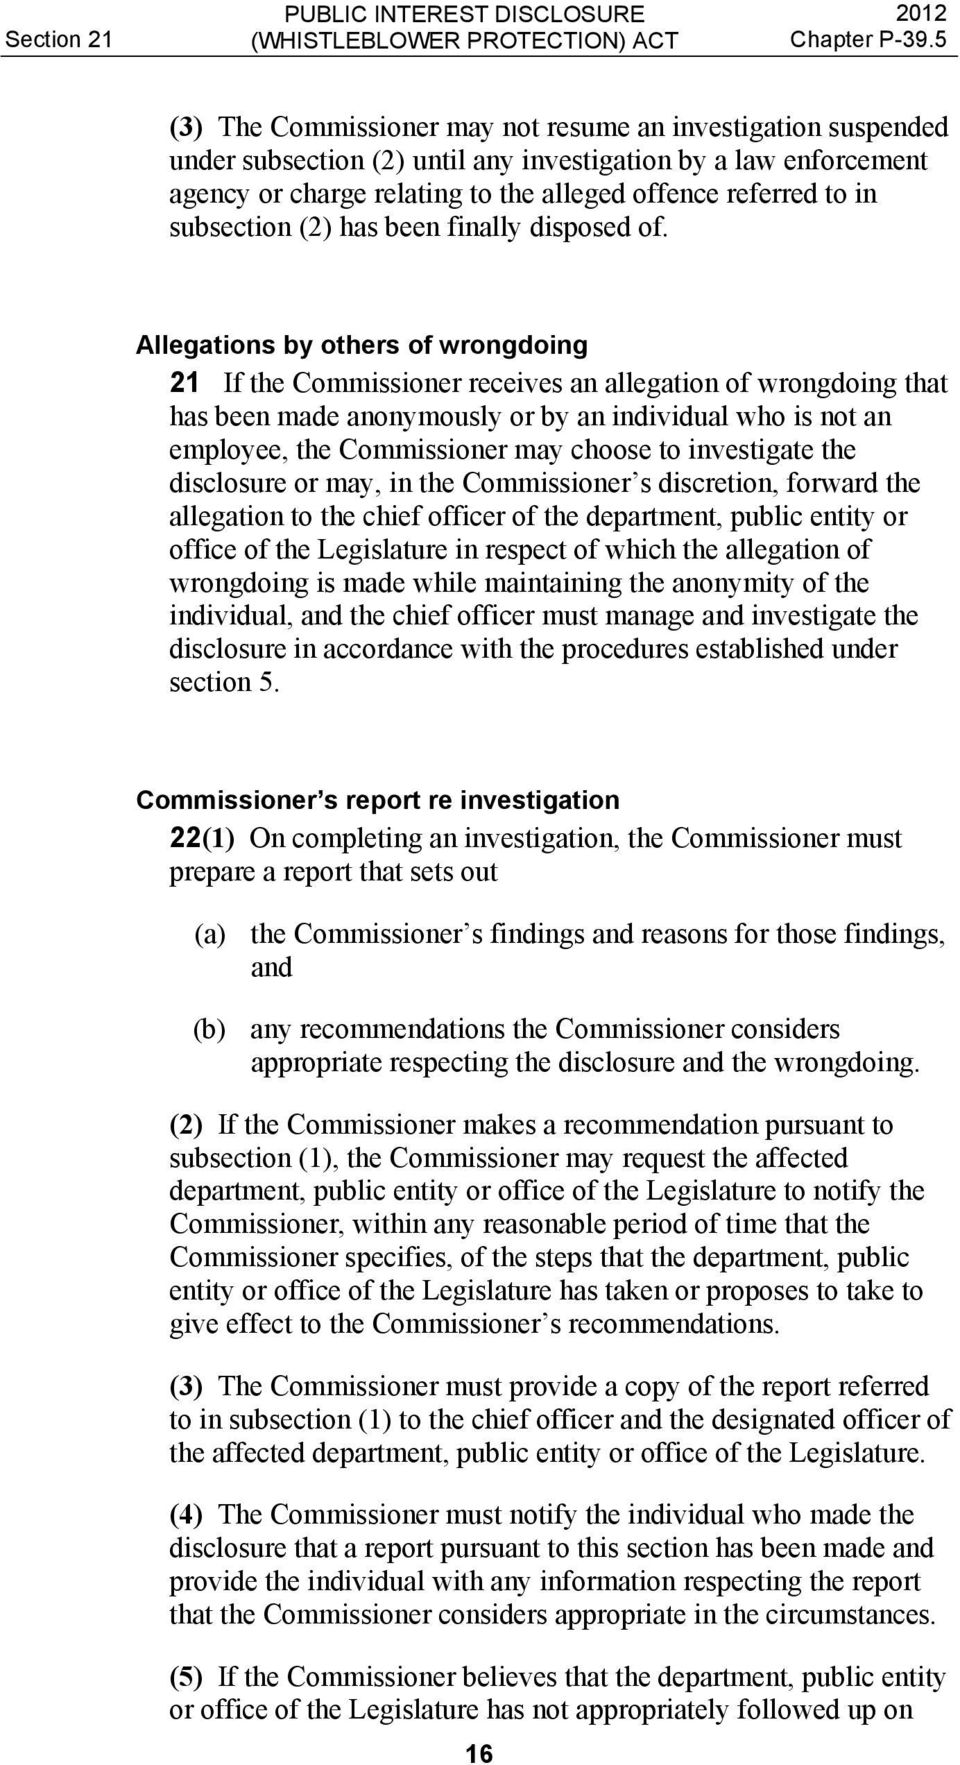 Allegations by others of wrongdoing 21 If the Commissioner receives an allegation of wrongdoing that has been made anonymously or by an individual who is not an employee, the Commissioner may choose